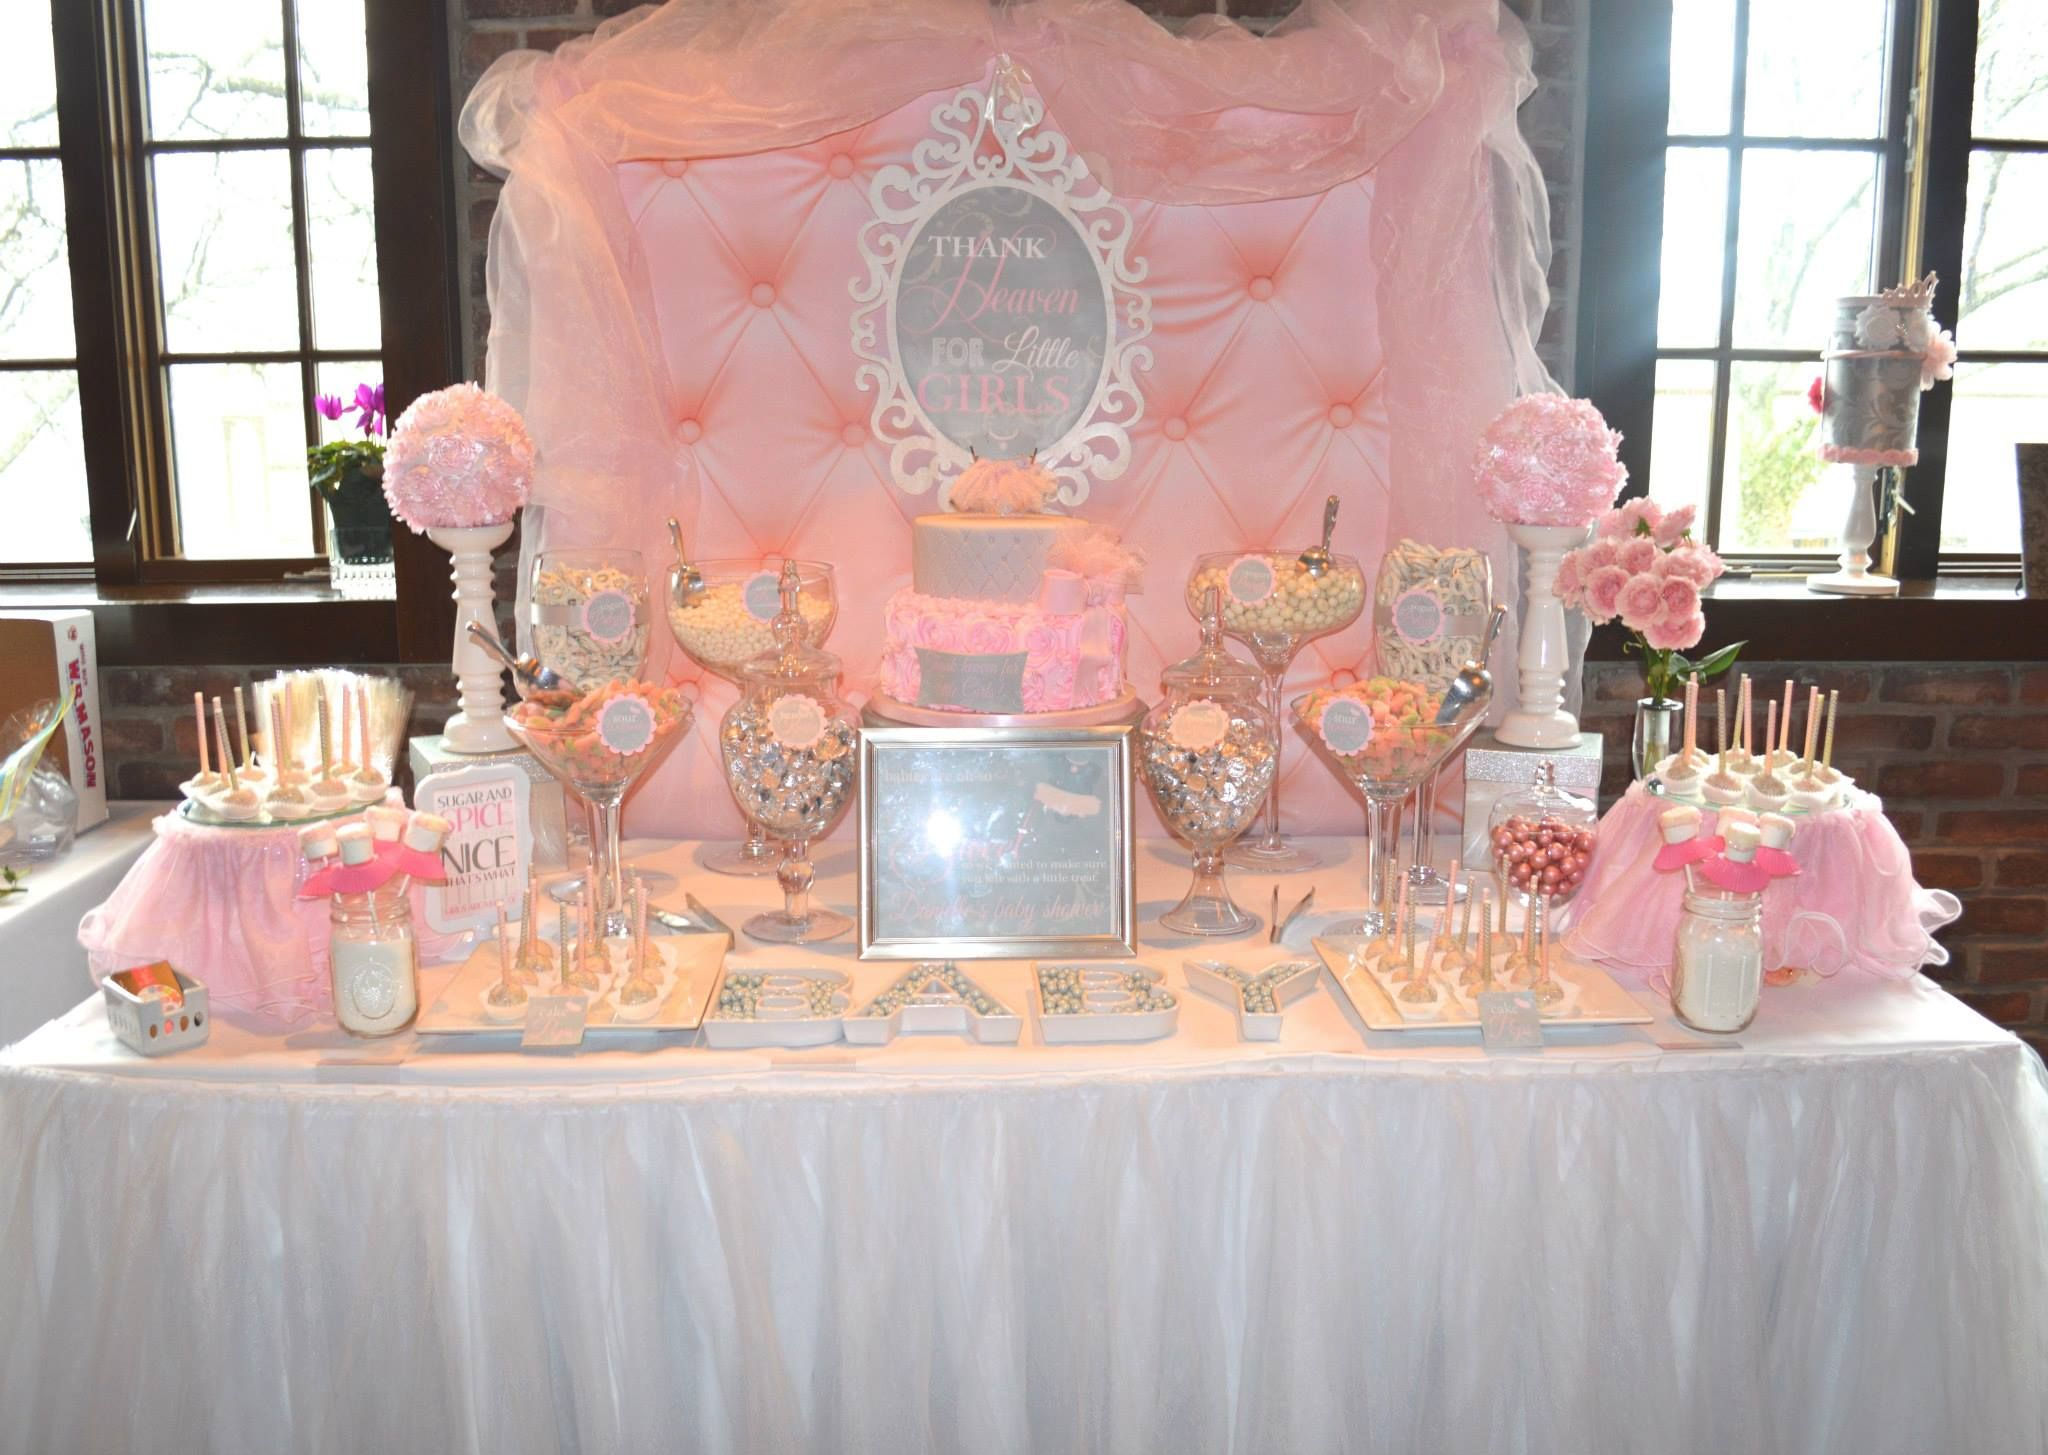 This pink candy buffet for a baby shower had a princess tutu theme this pink candy buffet for a baby shower had a princess tutu theme reviewsmspy